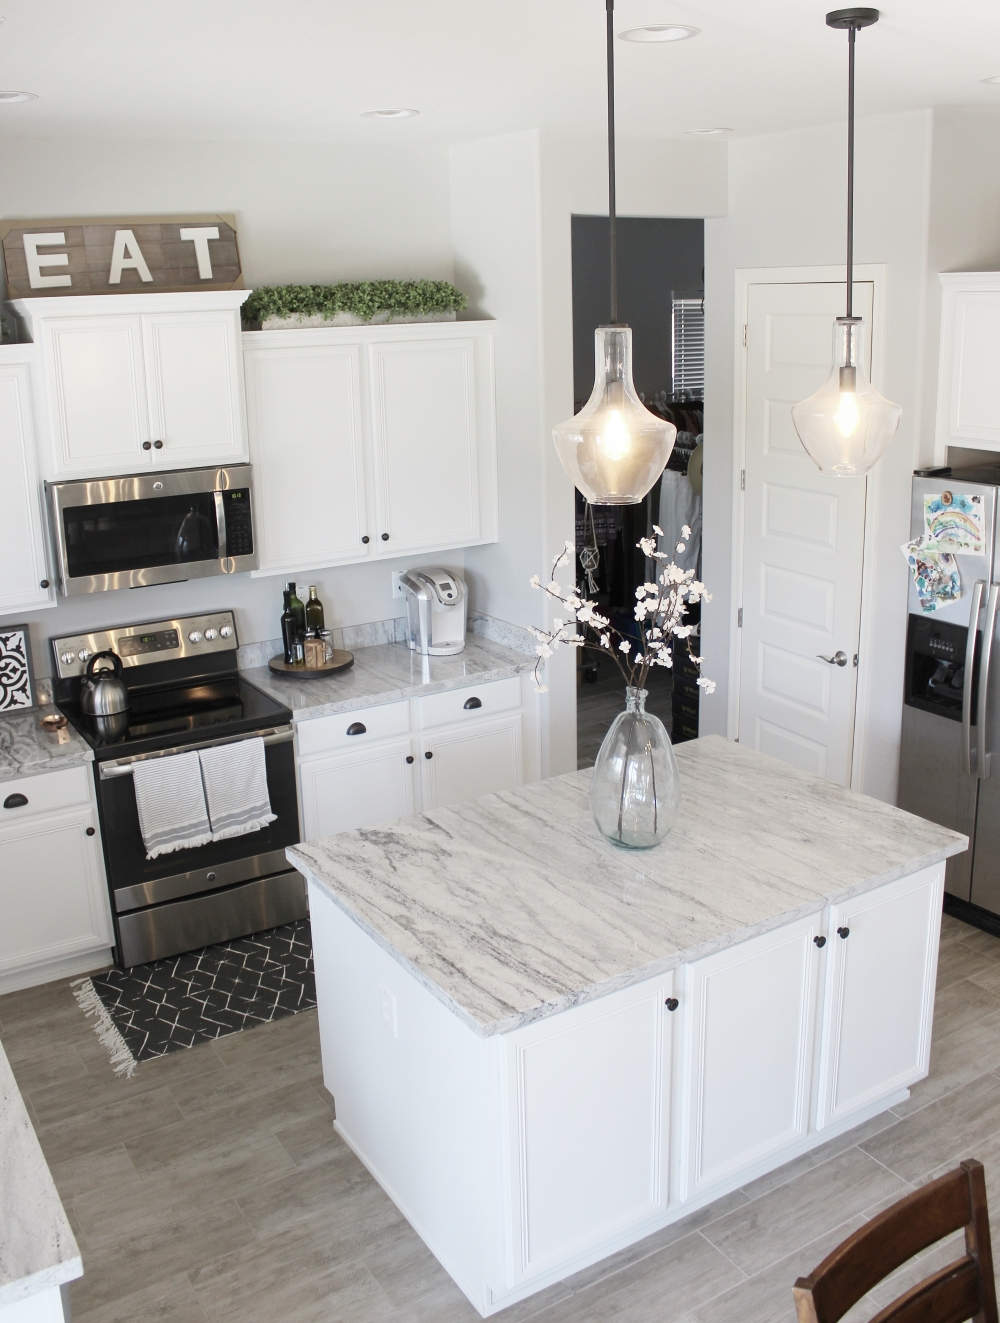 Modern Farmhouse Kitchen Decor. Sherwin Williams Repose Gray paint color.